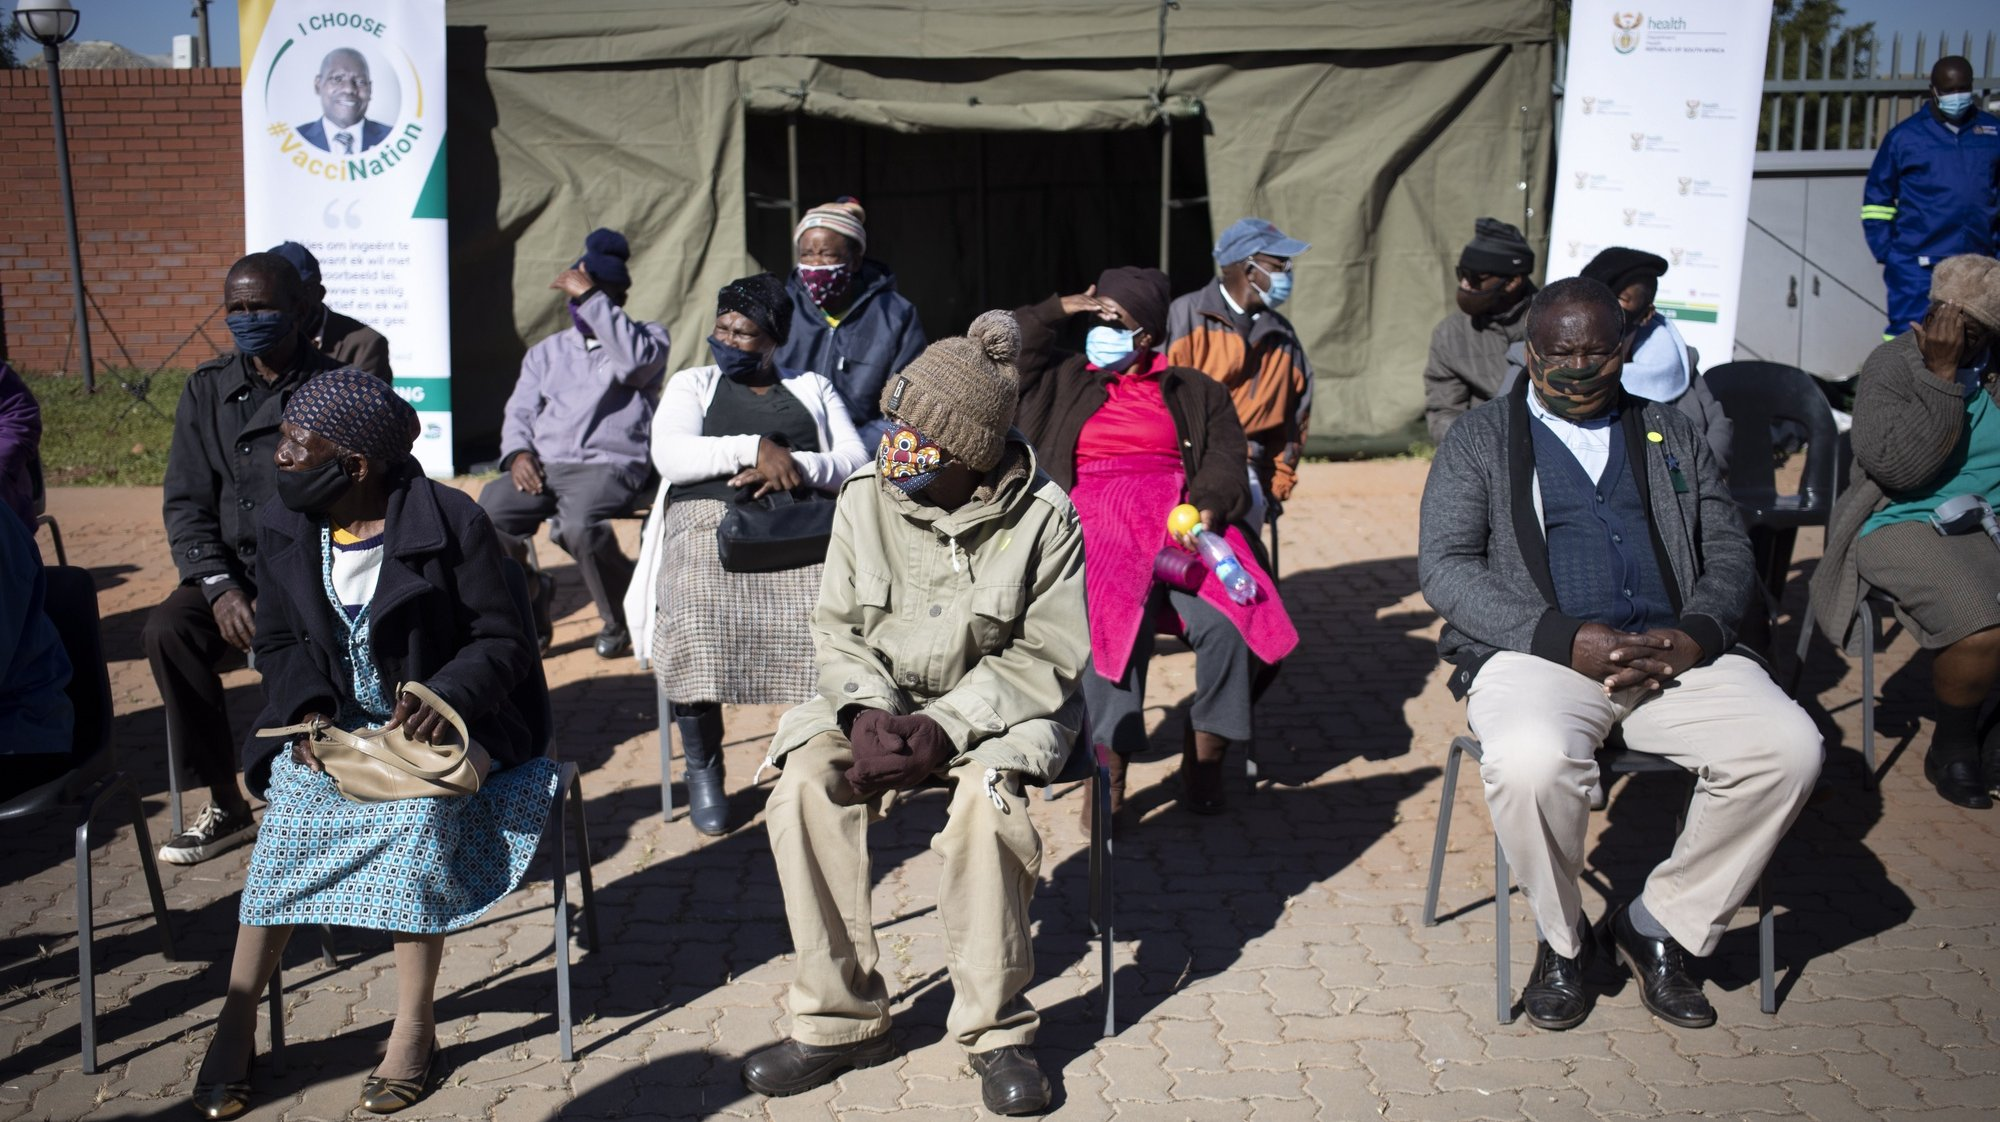 epa09206341 Elderly members of the community wait in line to receive their vaccination during the first day of Covid-19 vaccinations for the over 60 year old population in the country, in Johannesburg, South Africa, 17 May 2021. The first round of vaccinations was for the health care workers in the country. South Africa is lagging behind many countries in the world in its vaccination program.  EPA/Kim Ludbrook